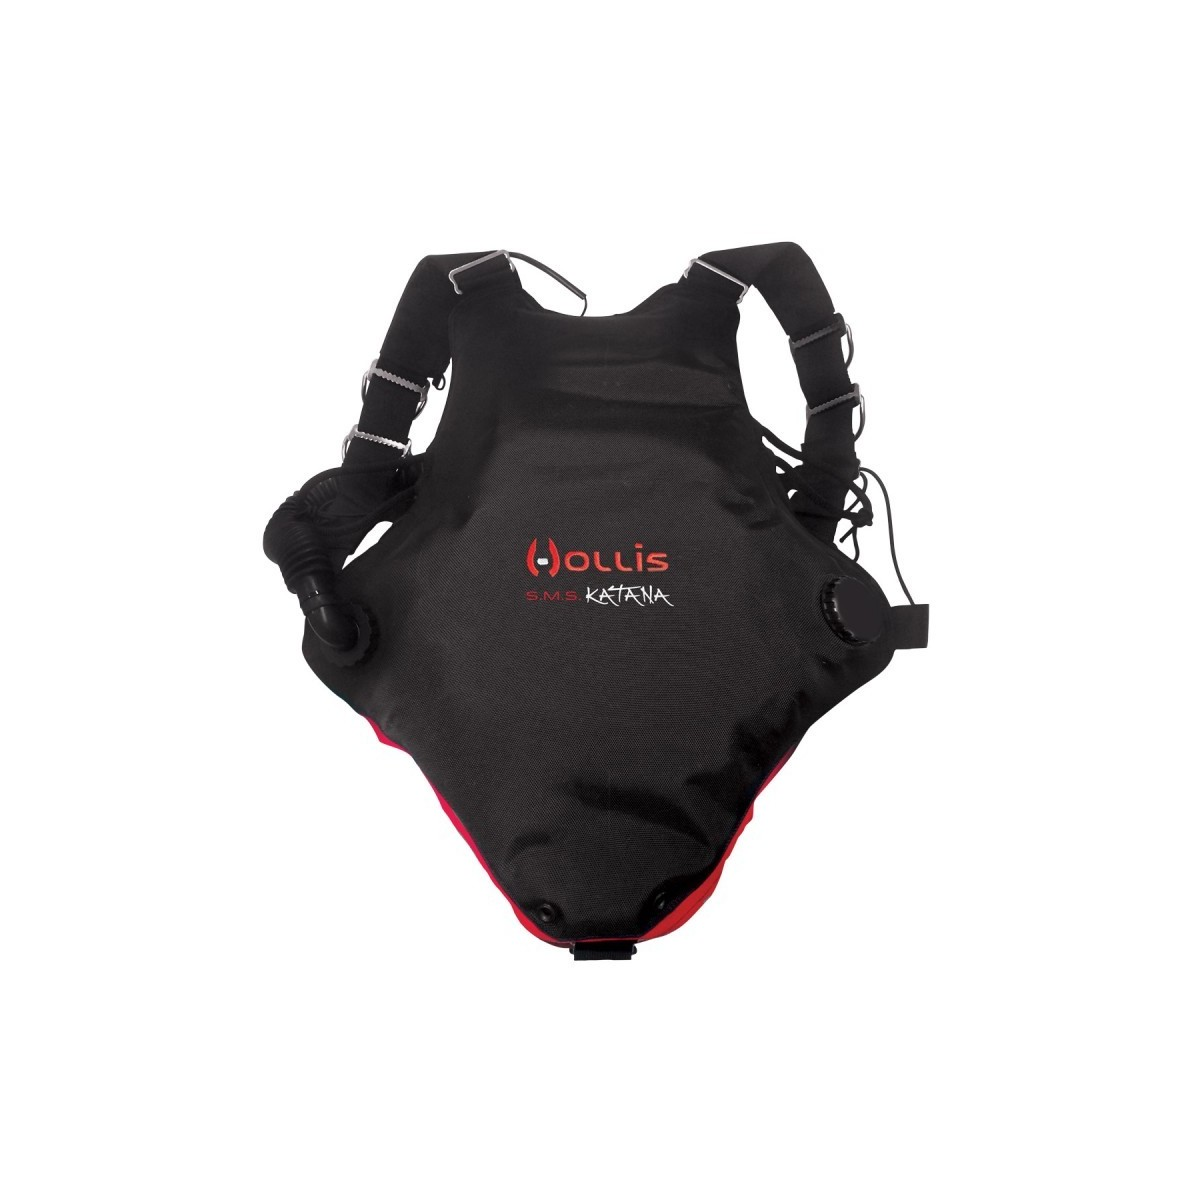 Hollis SMS Katana Back Inflation BCD